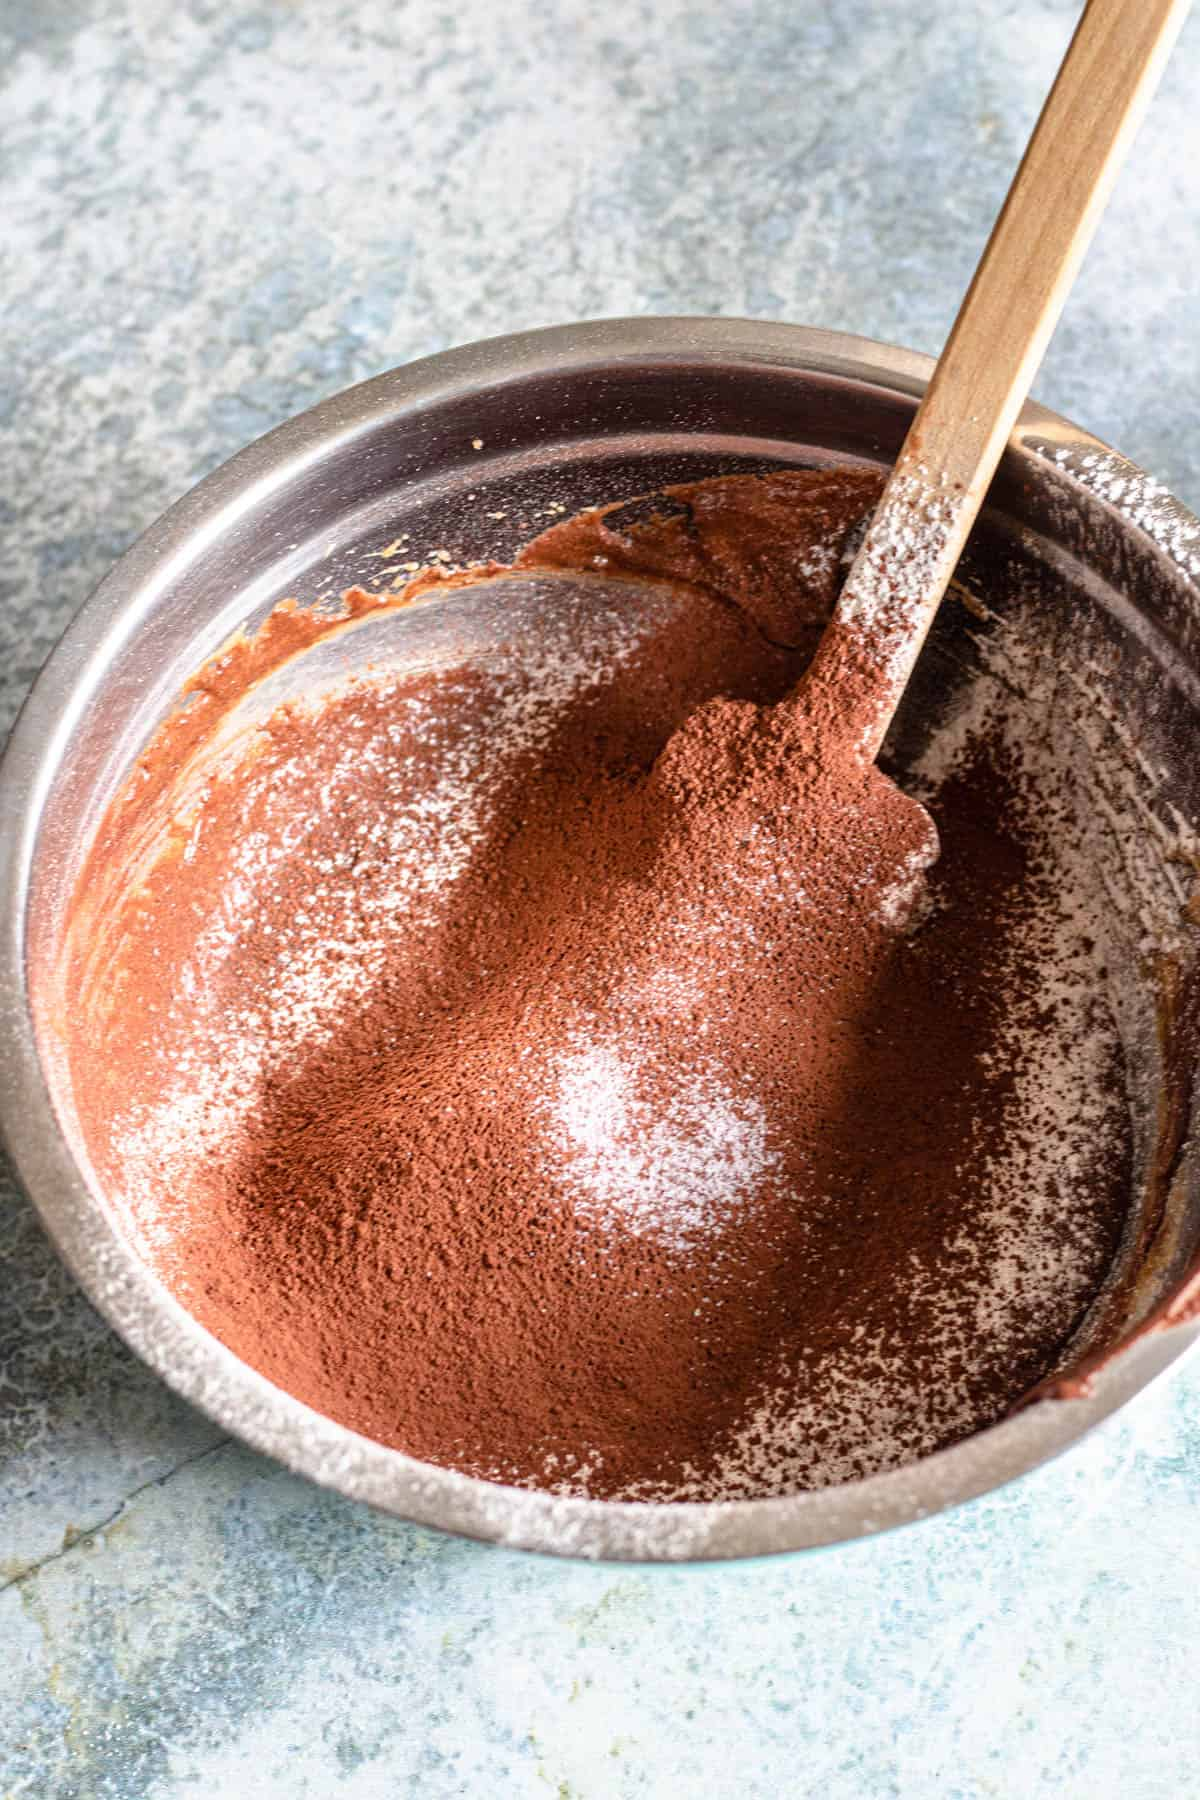 flour and cocoa powder sifted into the mixing bowl